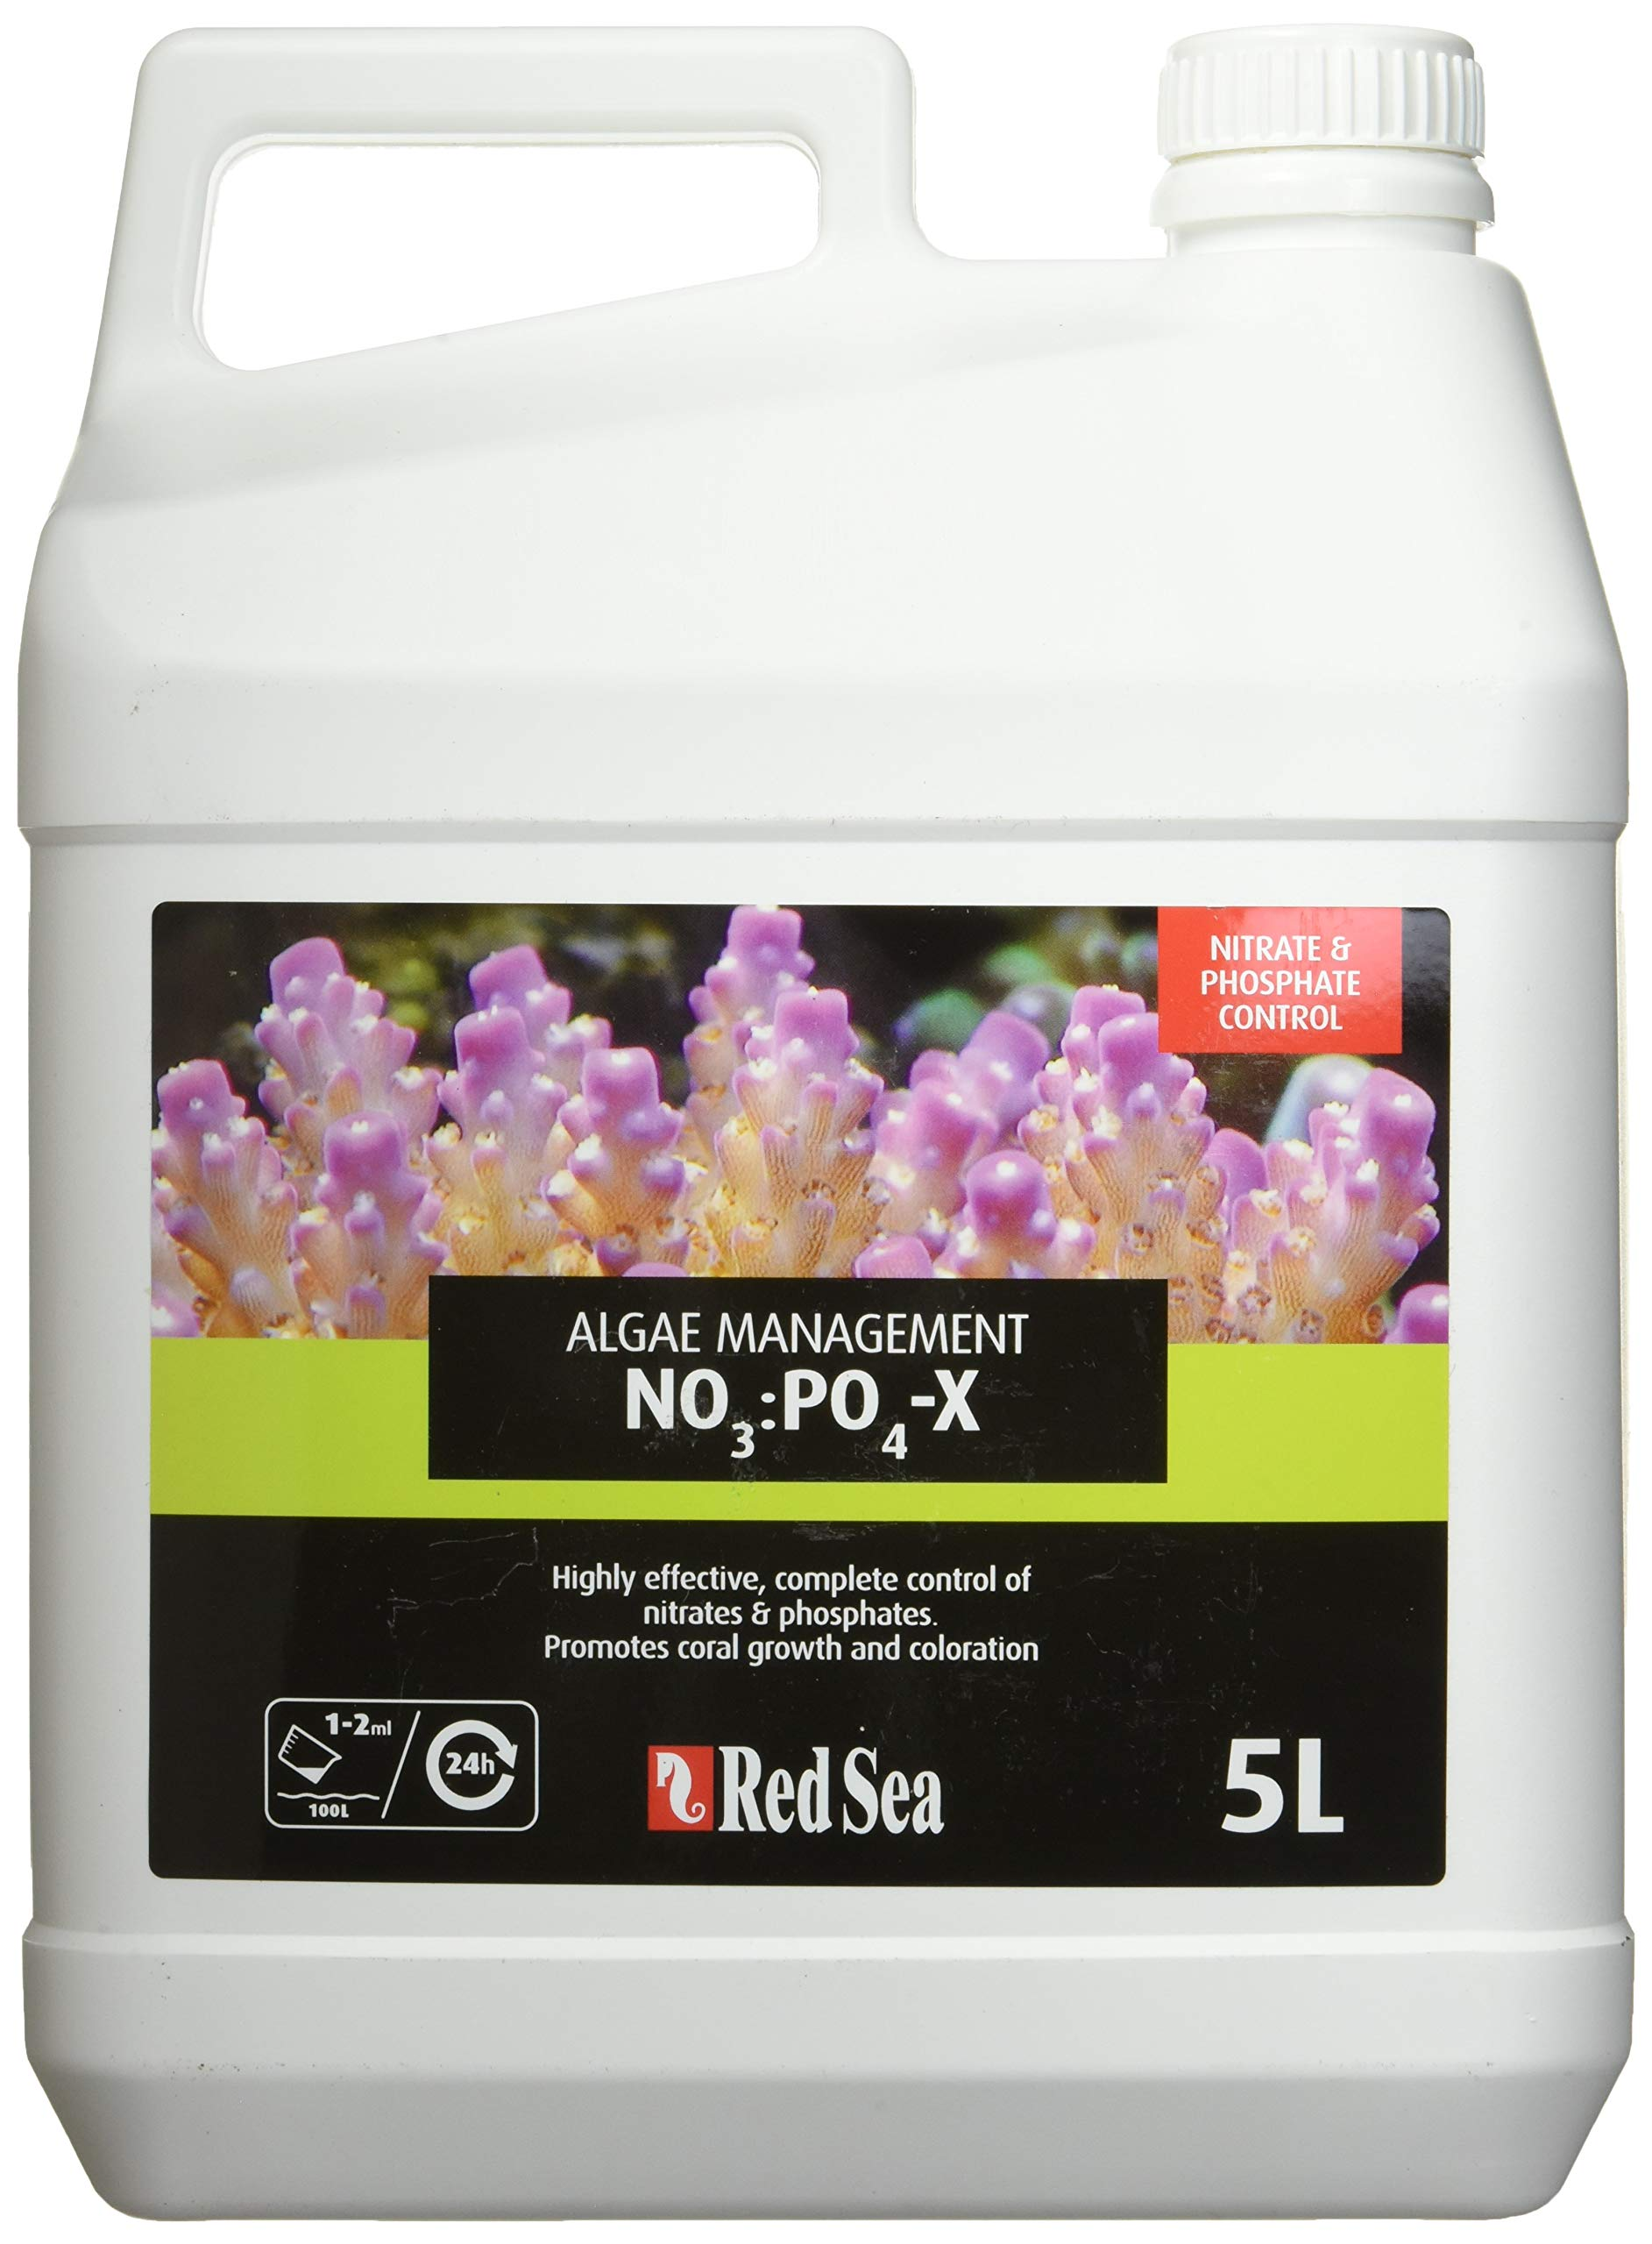 Red Sea Supplement Nopox, 5 L by Red Sea